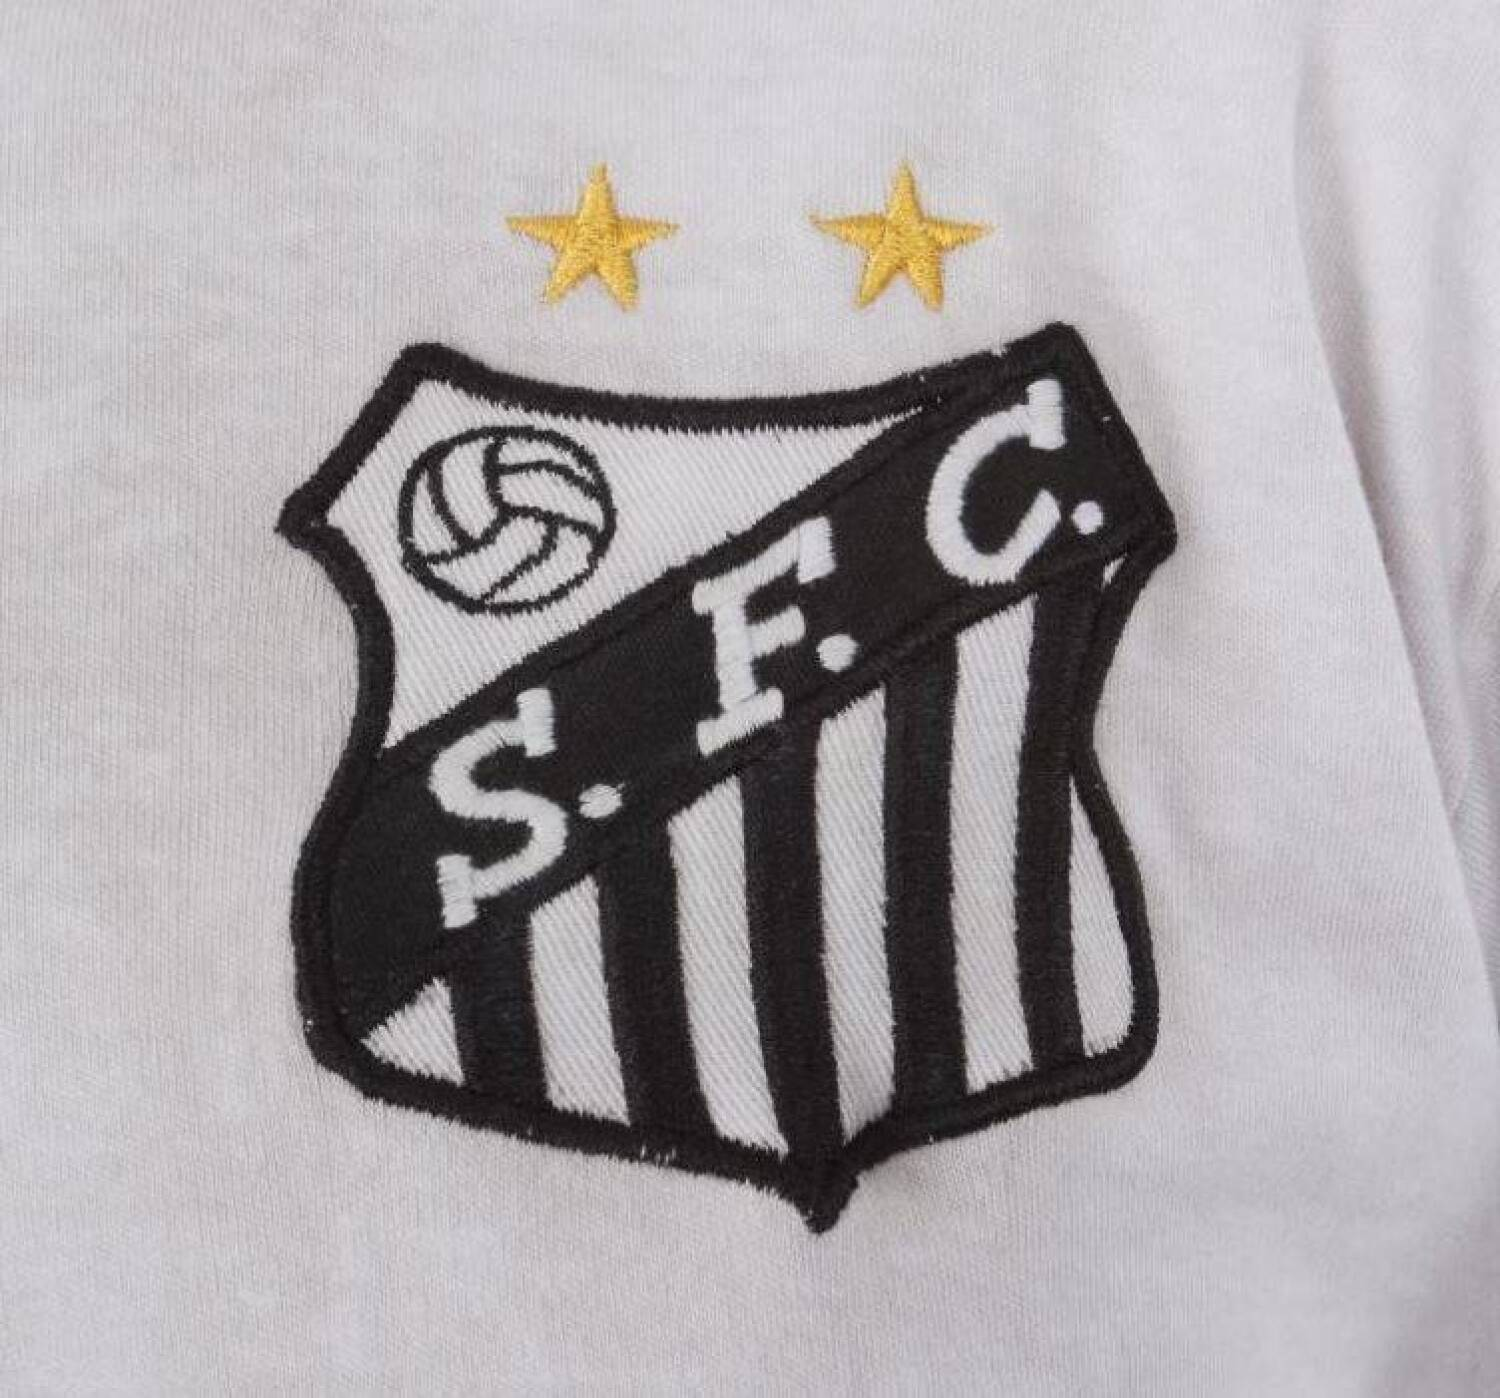 170877c86 PELÉ GAME WORN AND SIGNED 1972-73 SANTOS FC JERSEY Please Wait... Click  image to enlarge